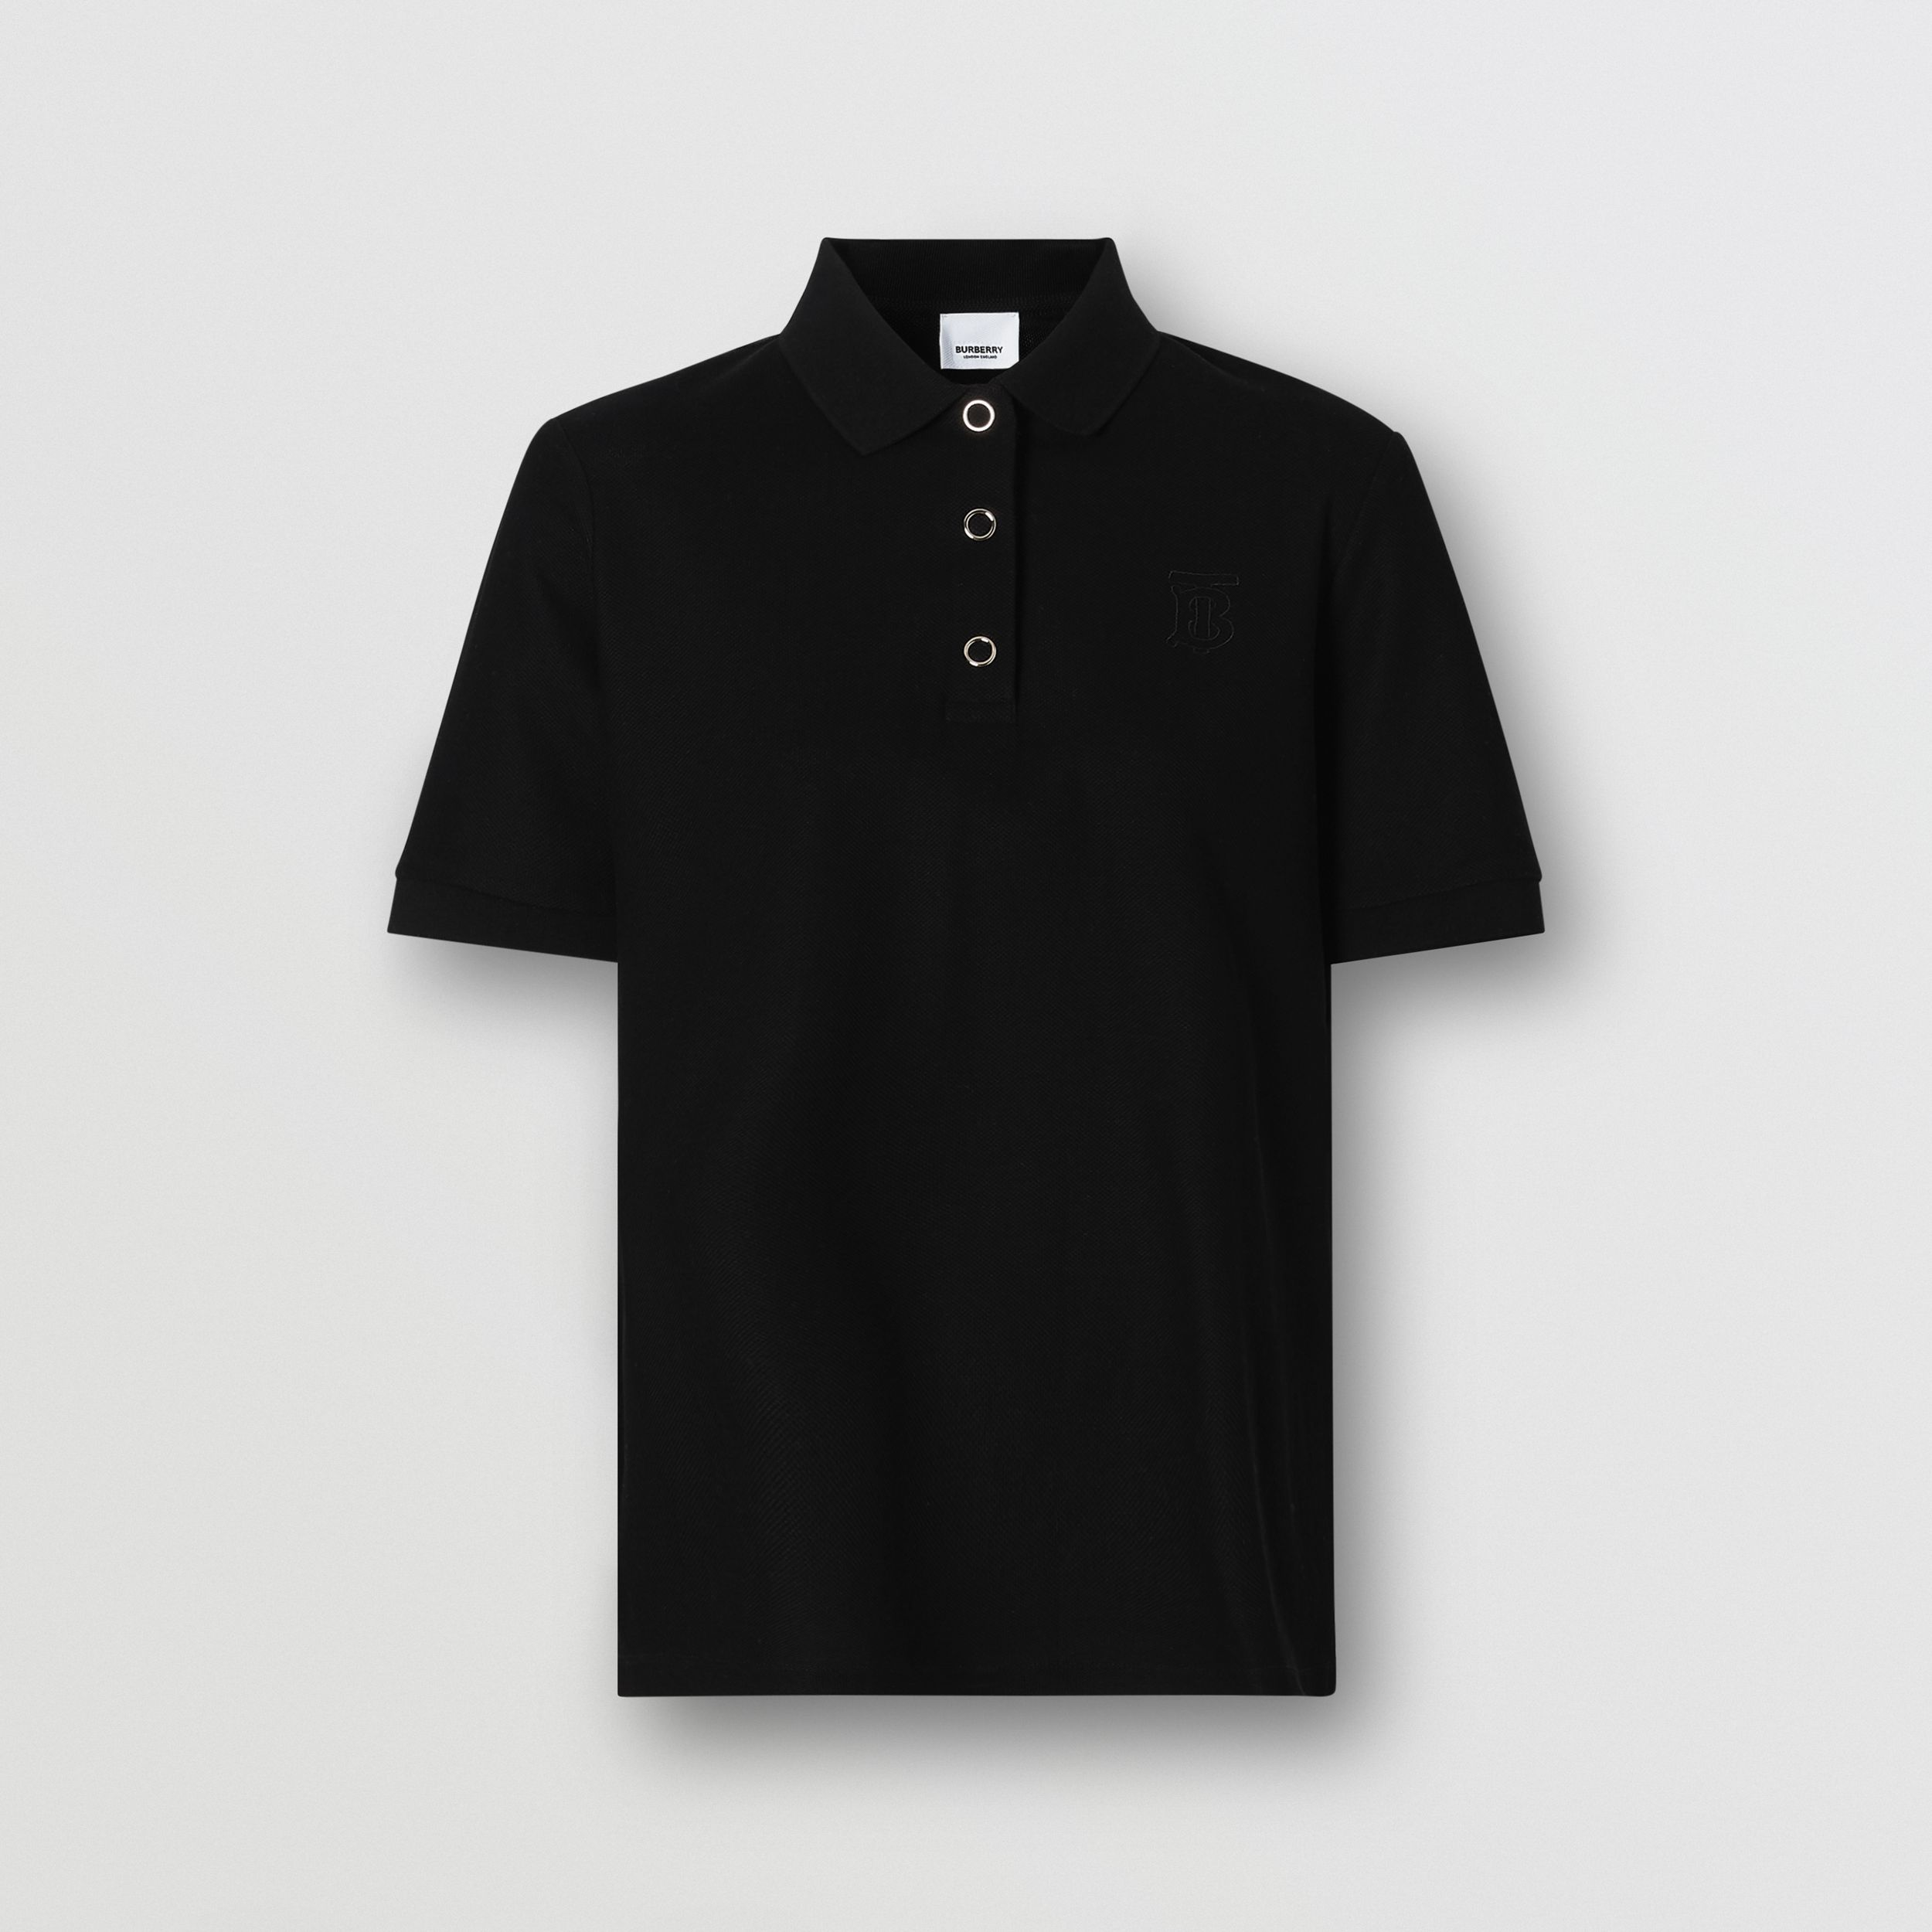 Monogram Motif Cotton Piqué Polo Shirt in Black - Women | Burberry - 4